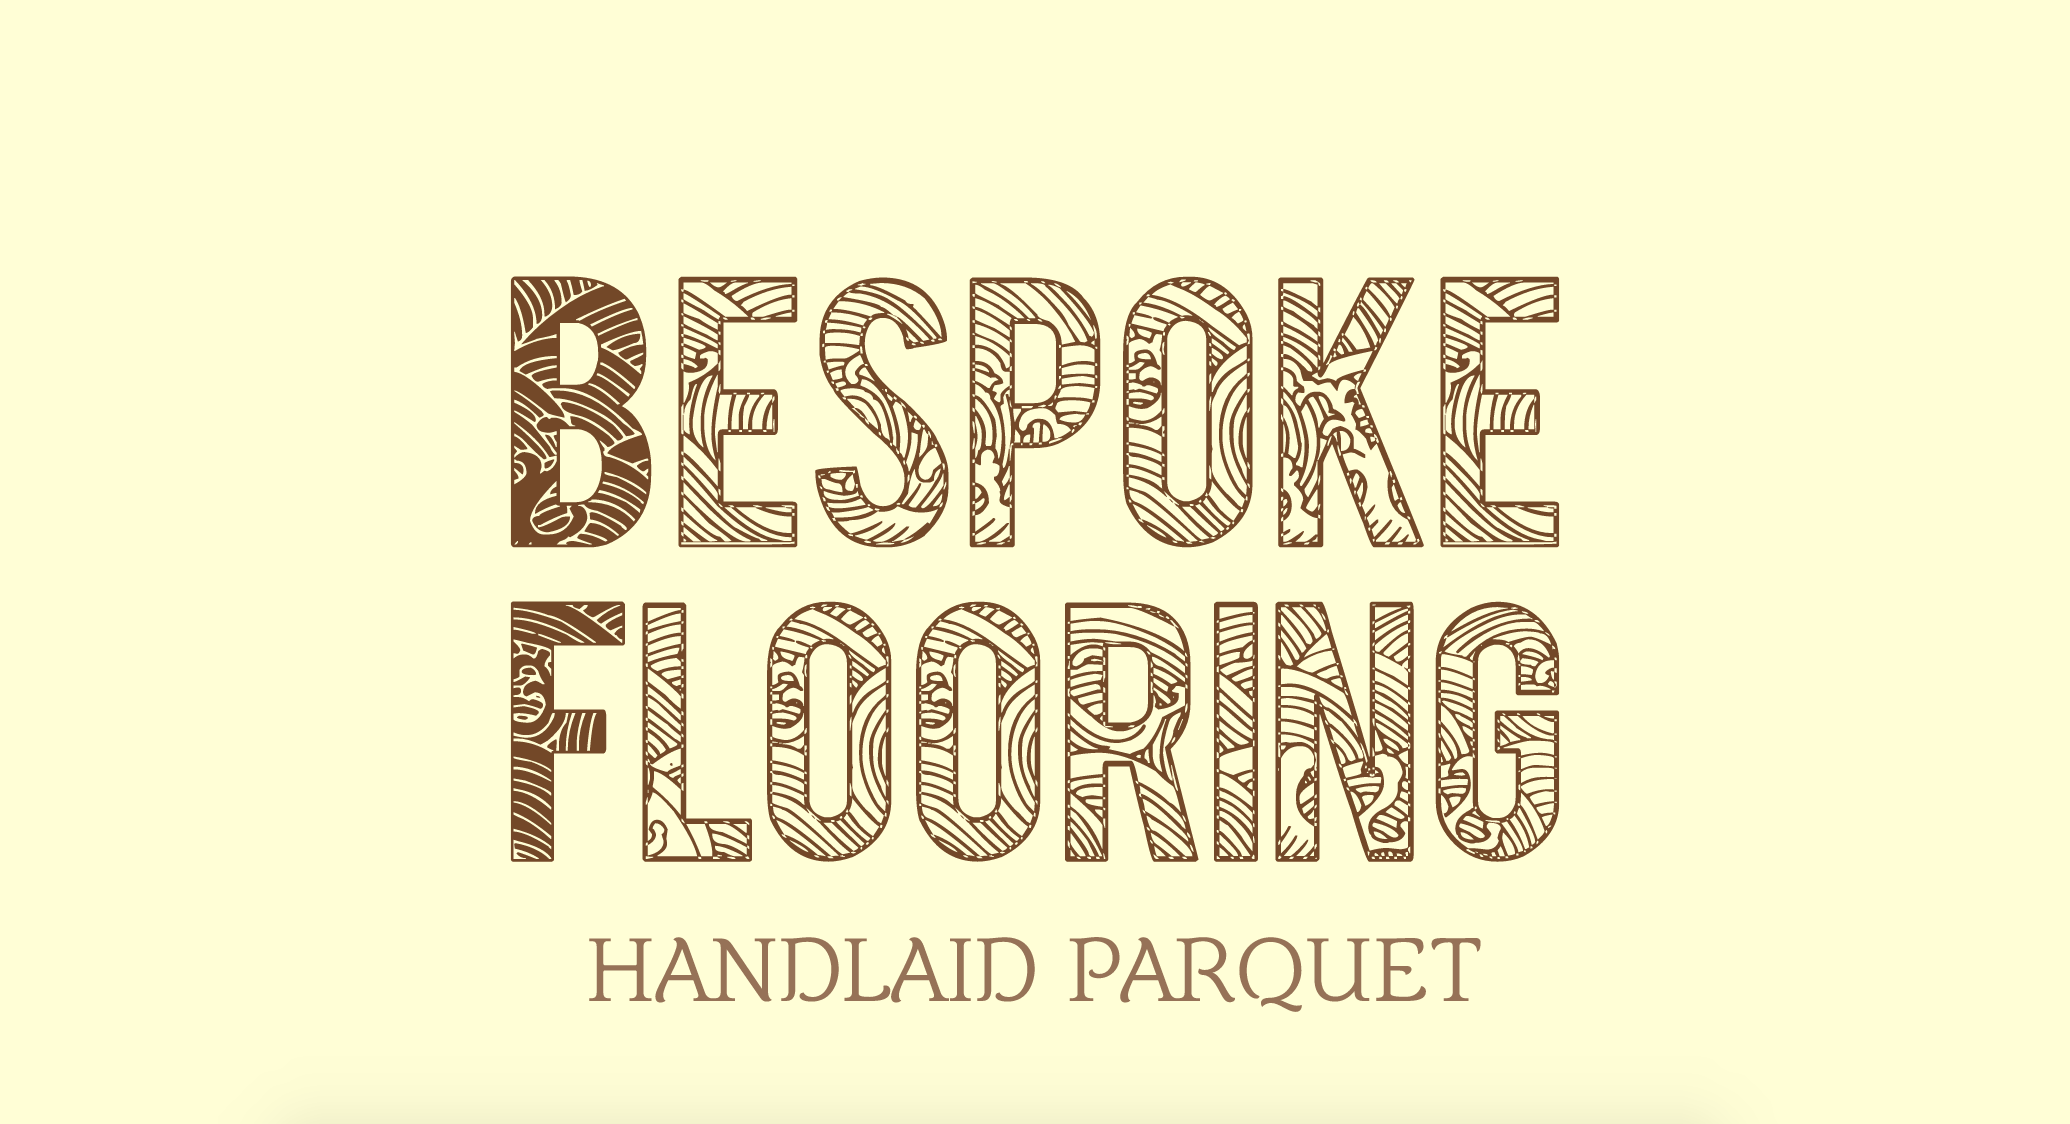 Sample woodworking logo made with Looka - Bespoke Flooring